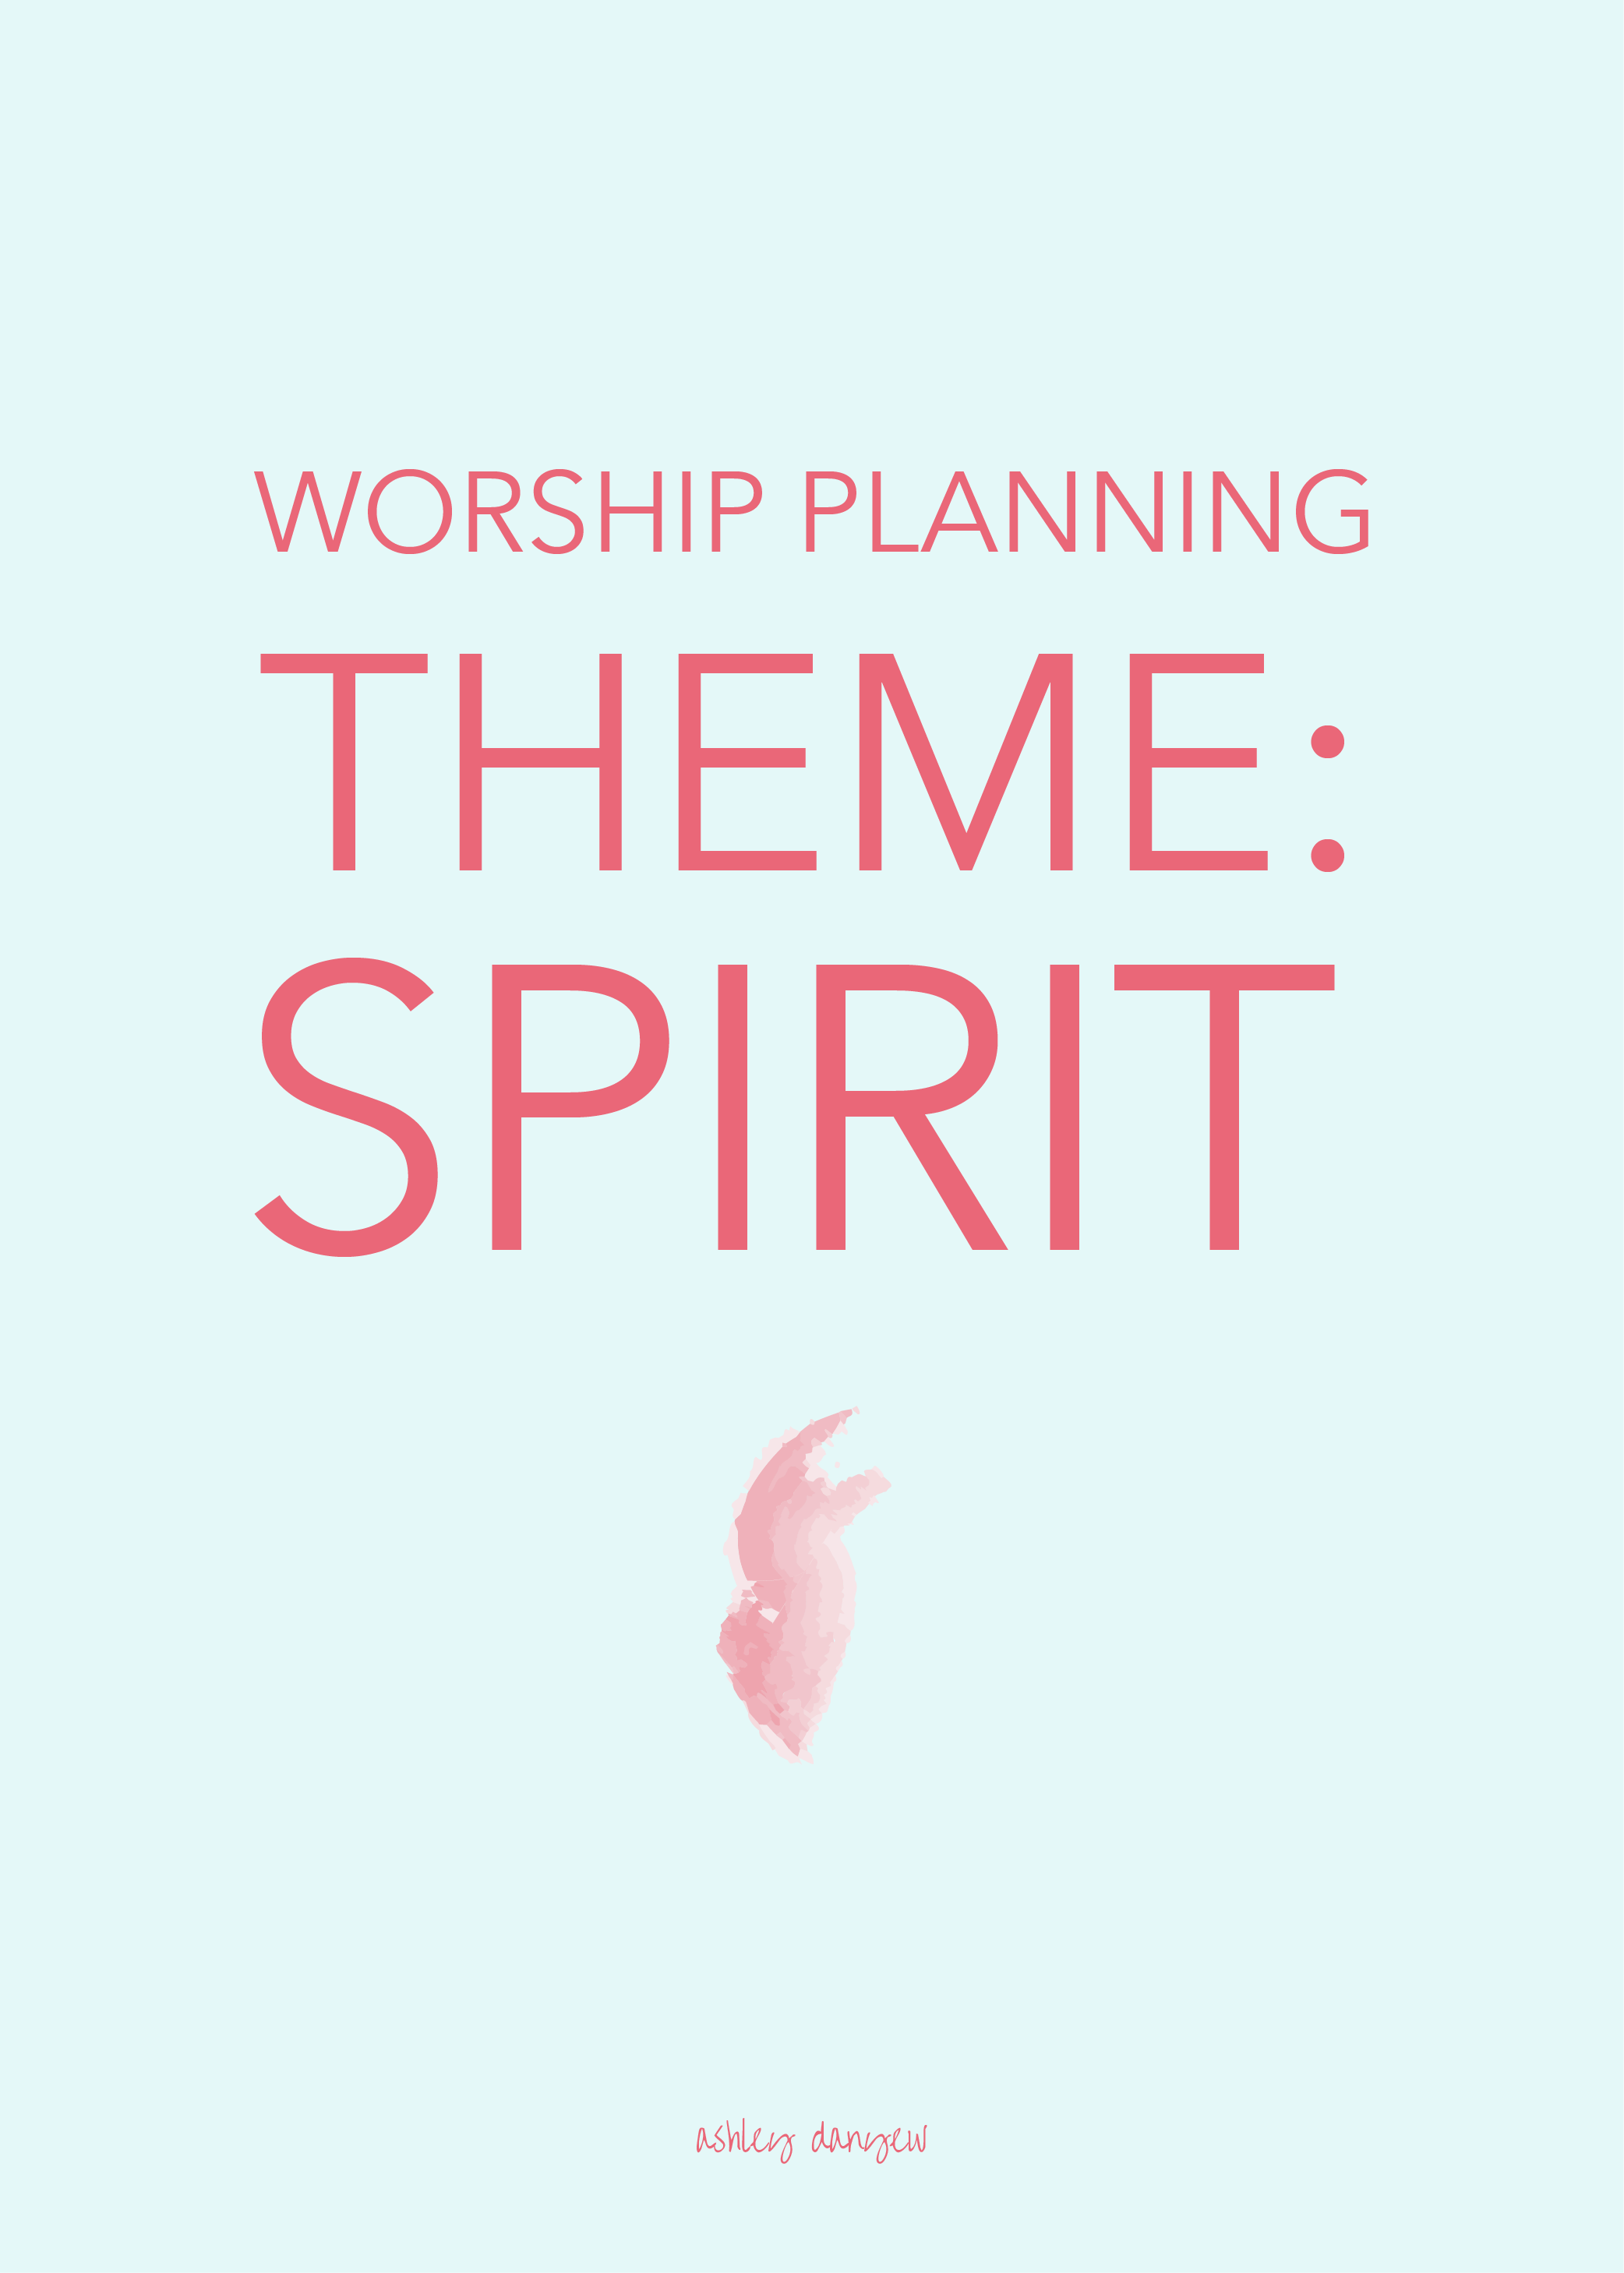 Copy of Worship Planning Theme: Spirit